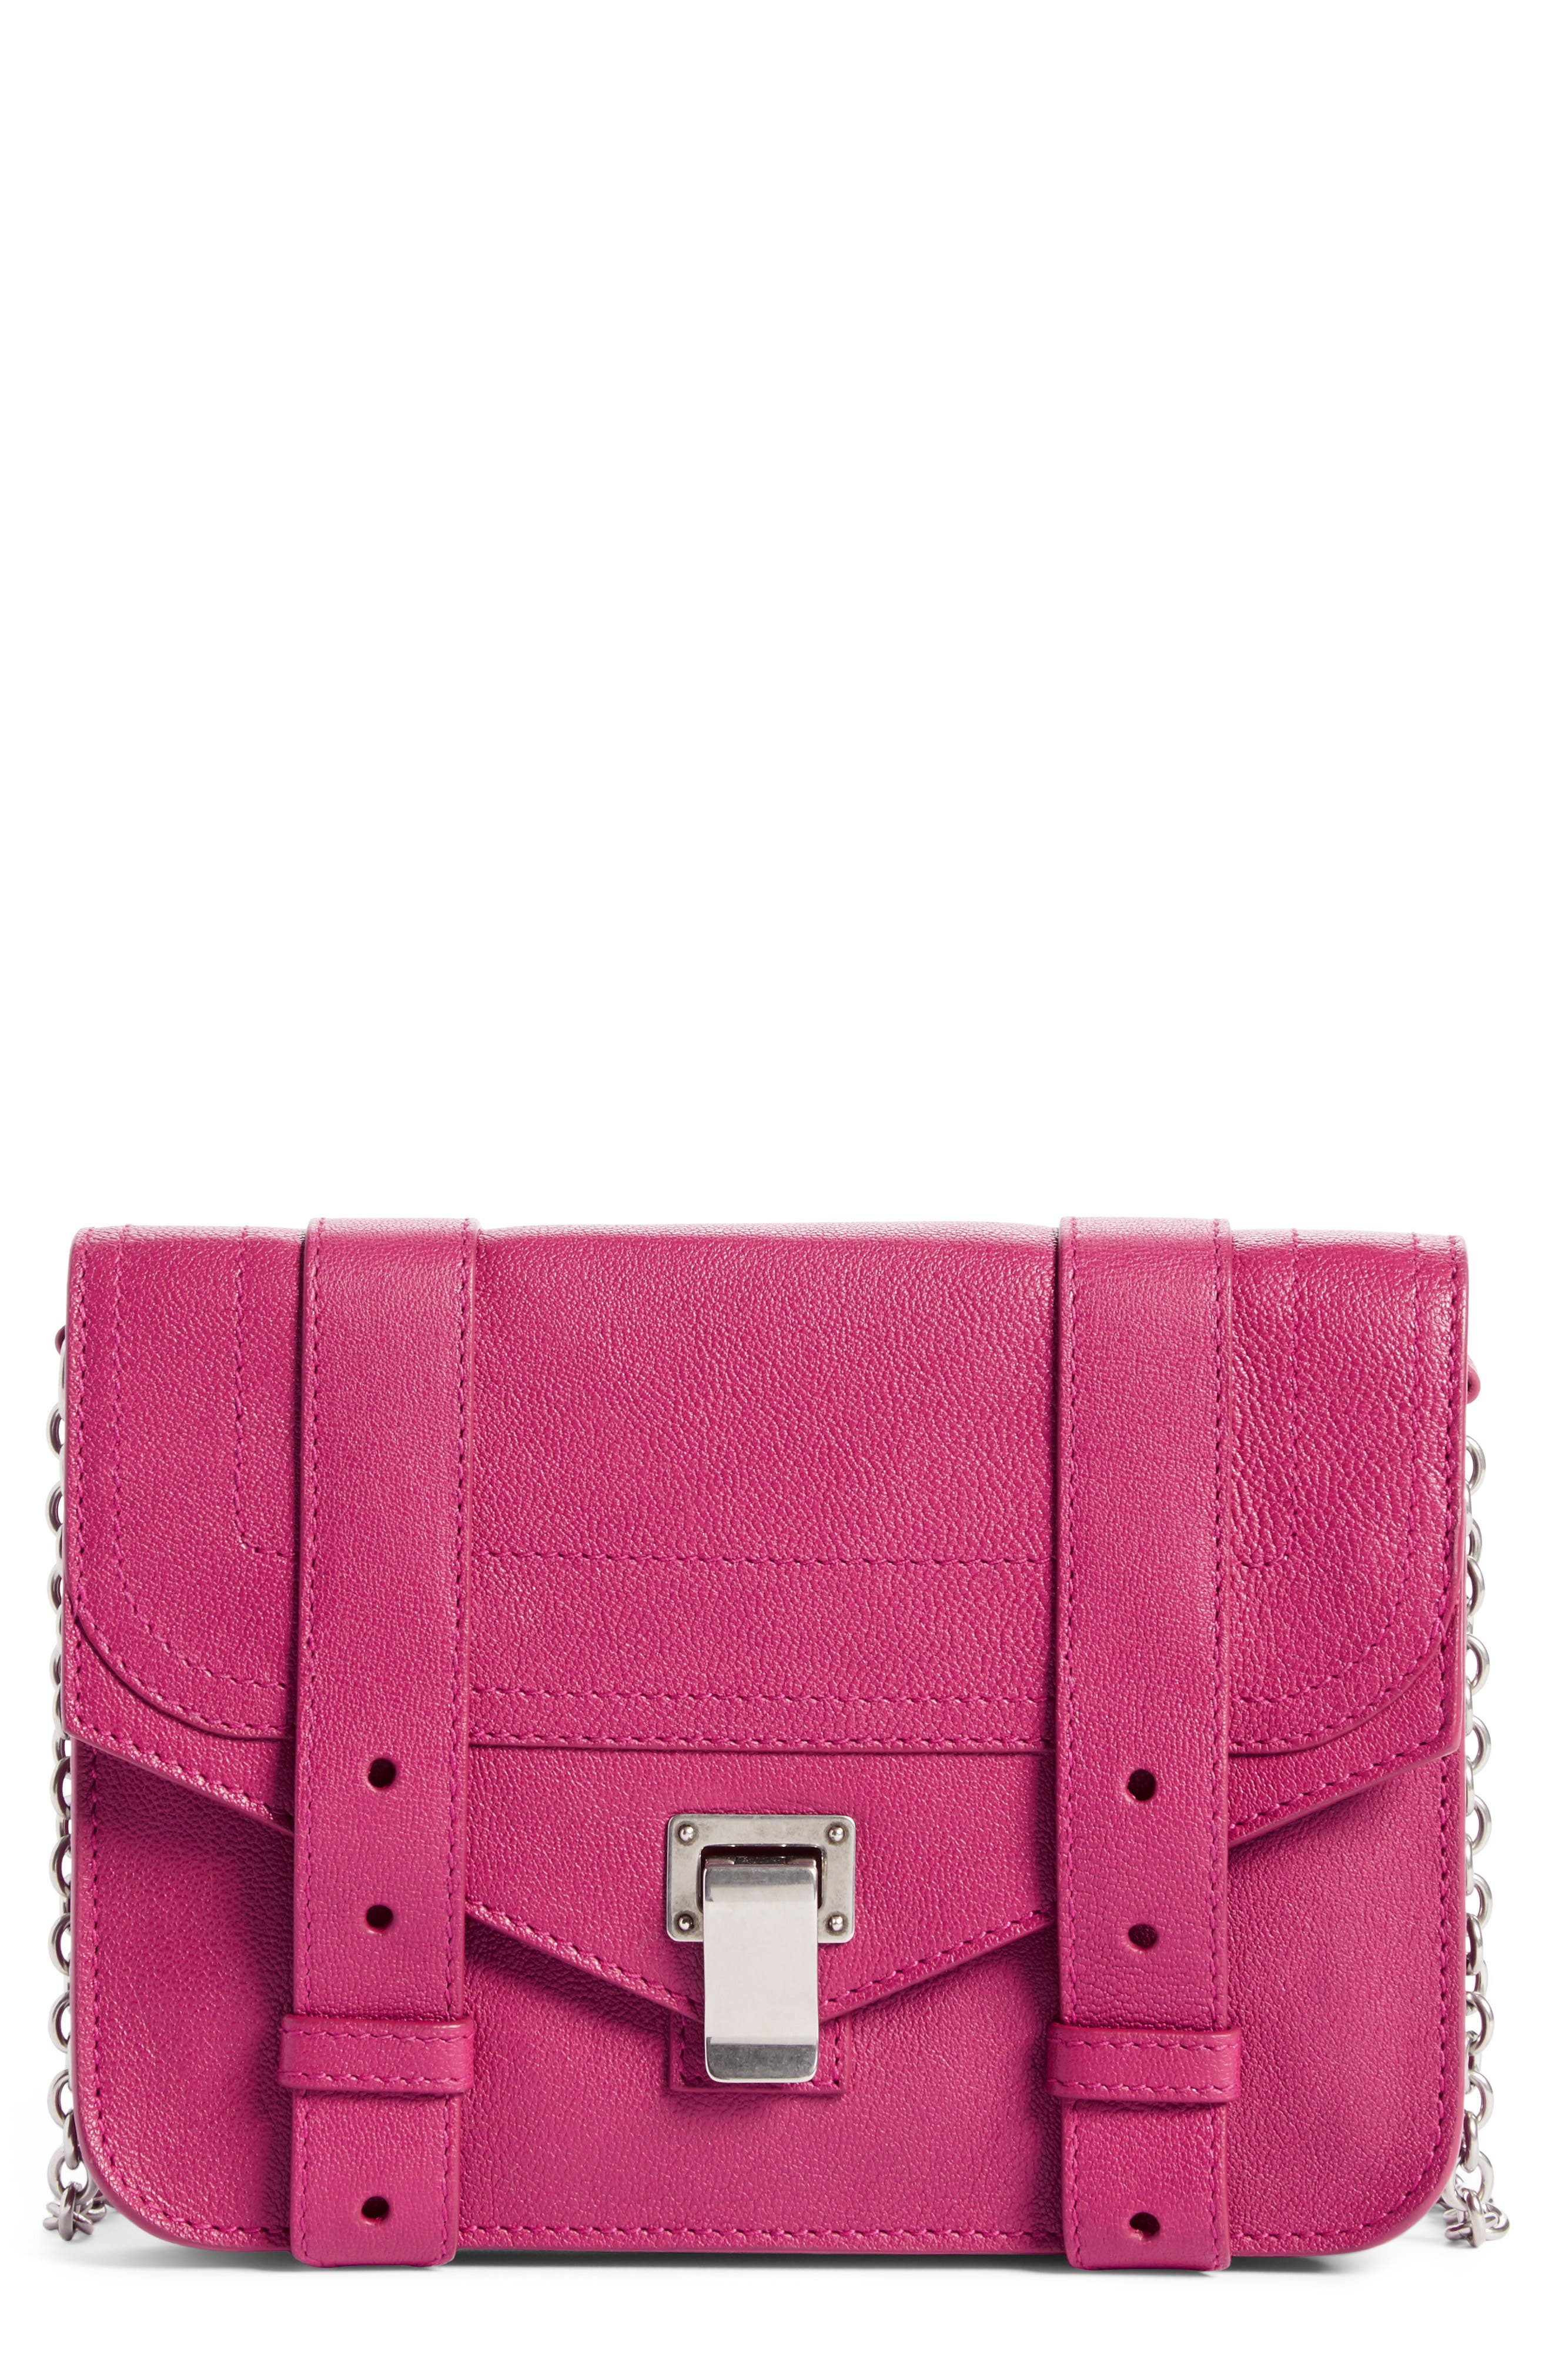 Proenza Schouler PS1 Leather Chain Wallet